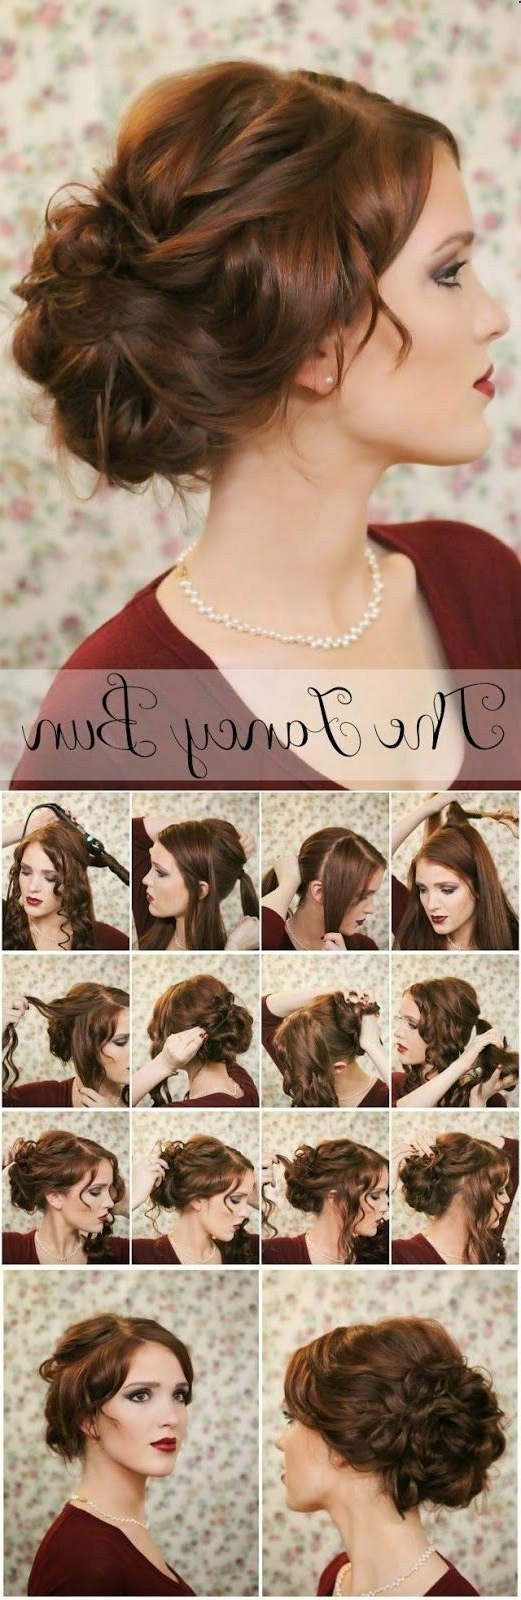 Most Current Elegant Wedding Hairstyles For Shoulder Length Hair Intended For 16 Pretty And Chic Updos For Medium Length Hair – Pretty Designs (View 12 of 15)